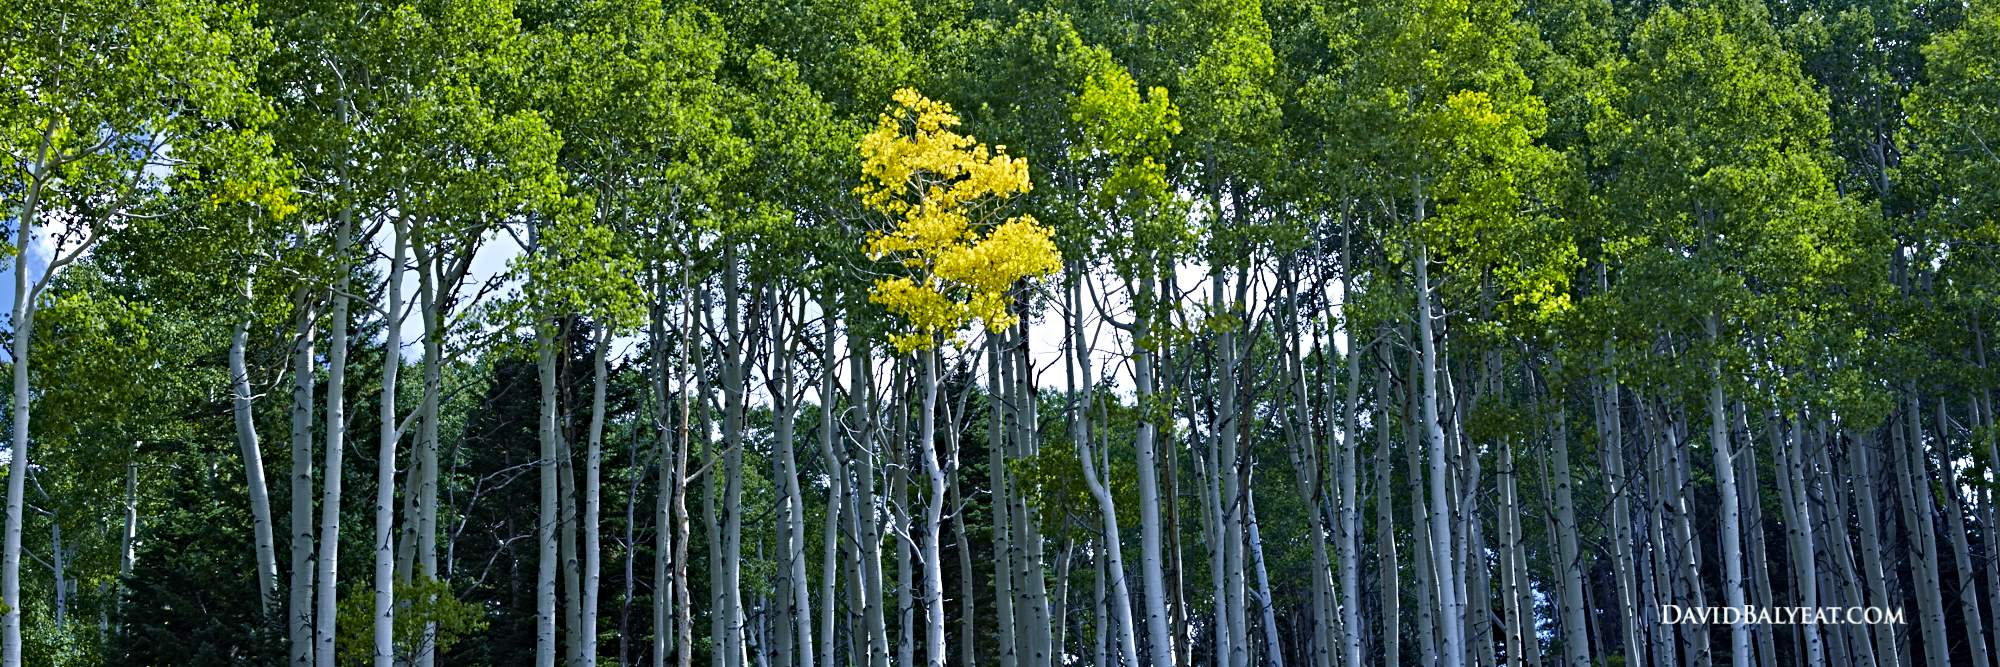 Colorado aspen trees in autumn (fall) panoramic high definition HD photography